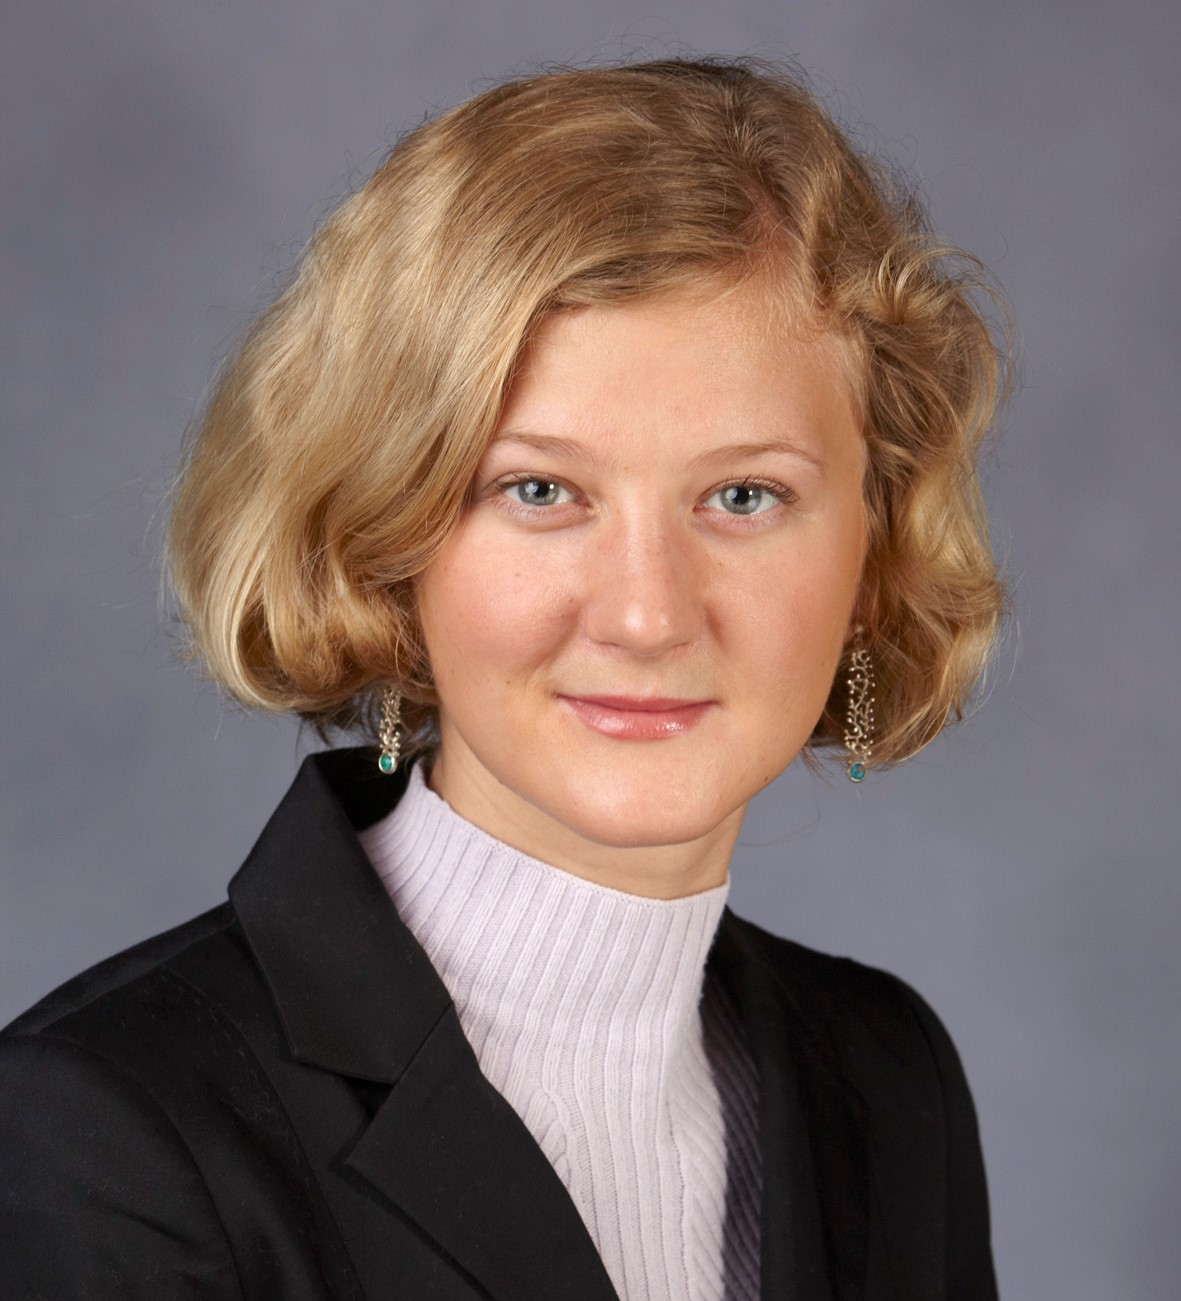 Profile photo of Olena Mazurenko